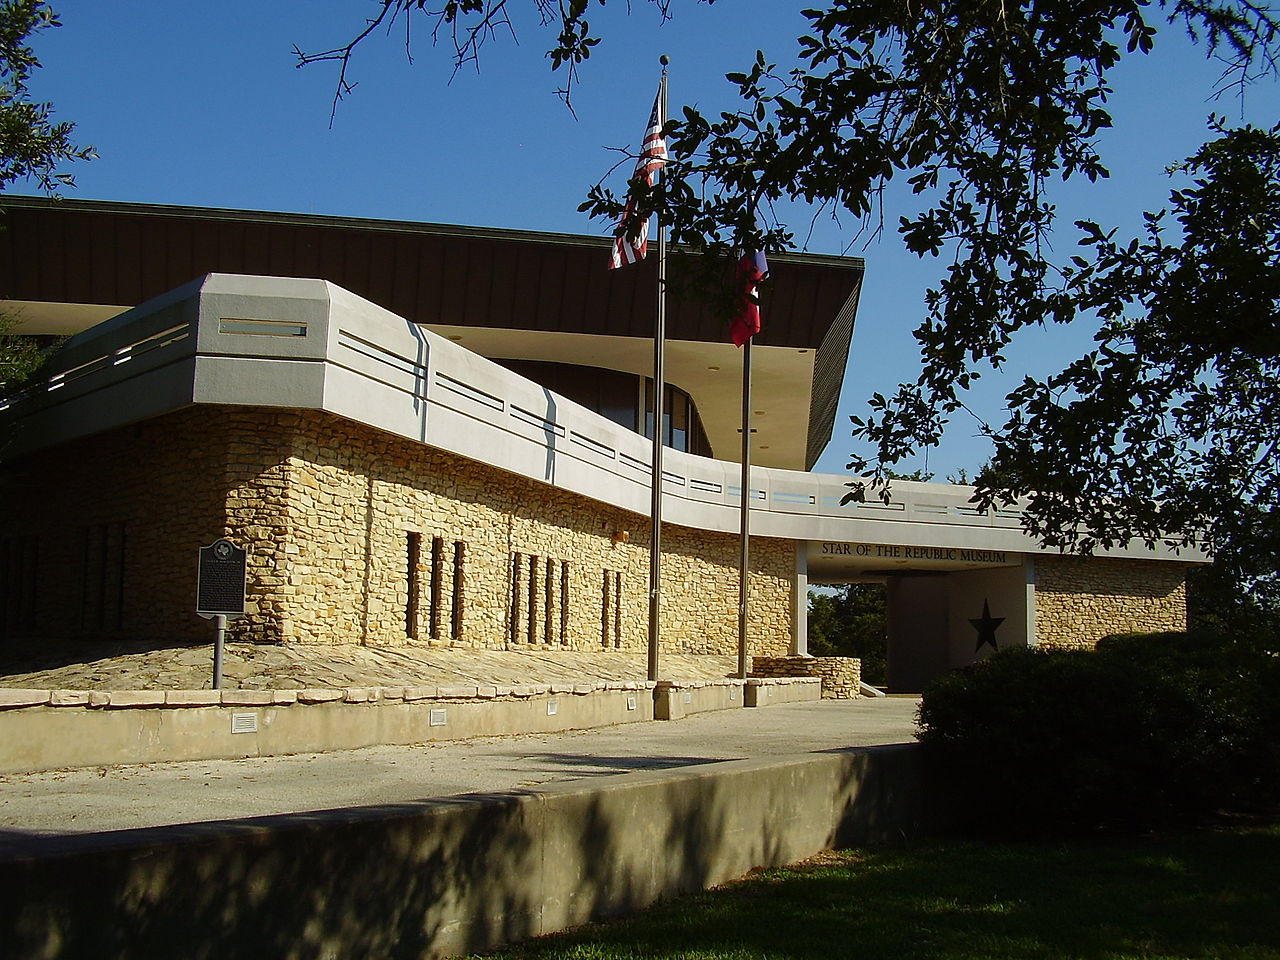 Amazing Historical Commission Sites In Texas-Star Of The Republic Museum